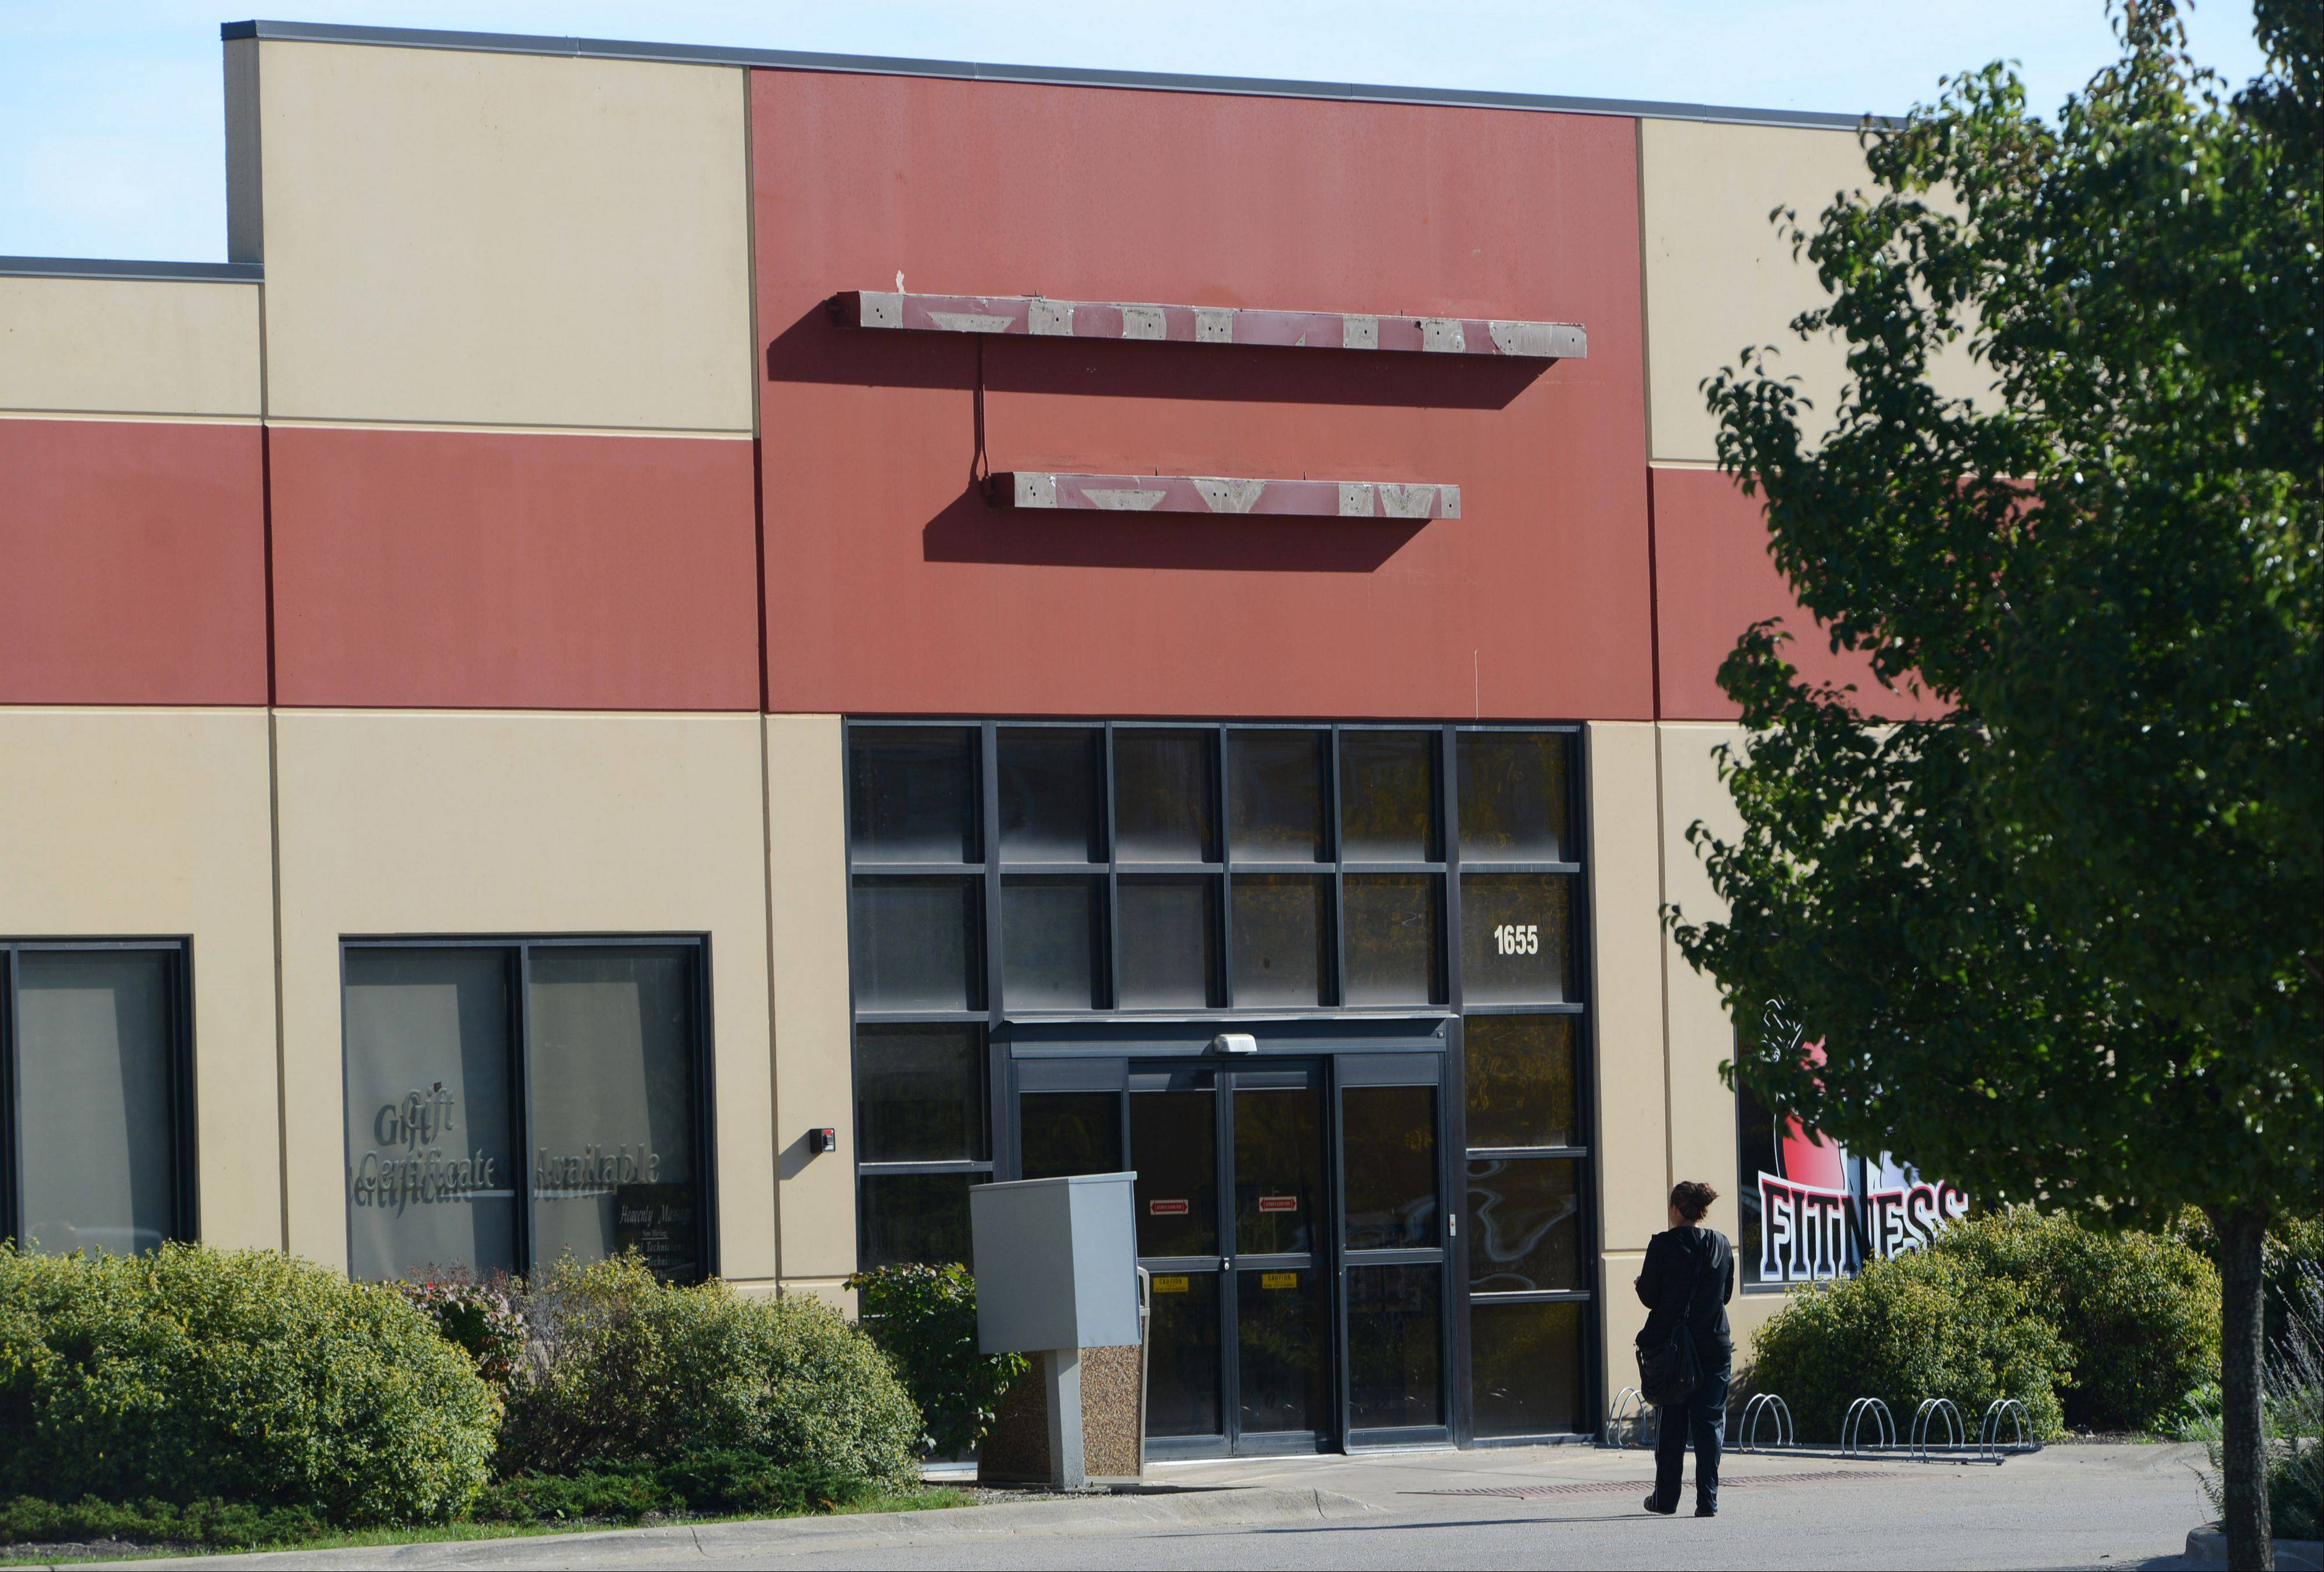 Gurnee Park District commissioners have given approval to borrow $8.5 million for the purchase of the former Gold's Gym near the Tri-State Tollway.